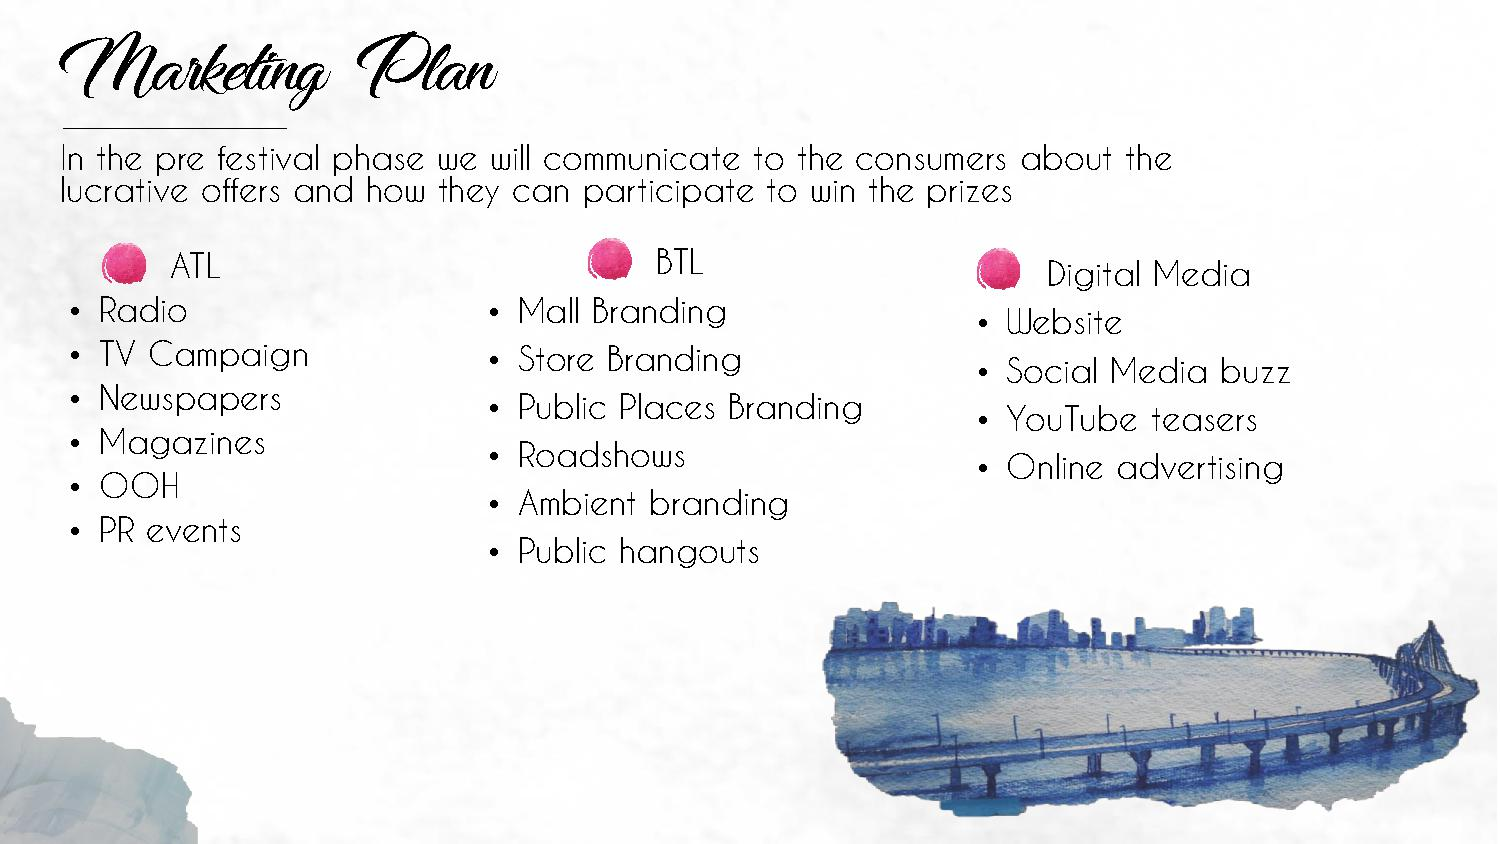 Marketing Plan In the pre festival phase we will communicate to the consumers about the lucrative offers and how they can participate to win the prizes ATL • Radio • TV Campaign • Newspapers • Magazines • OOH • PR events BTL • Mall Branding • Store Branding • Public Places Branding • Roadshows • Ambient branding • Public hangouts Digital Media • Website • Social Media buzz • YouTube teasers • Online advertising